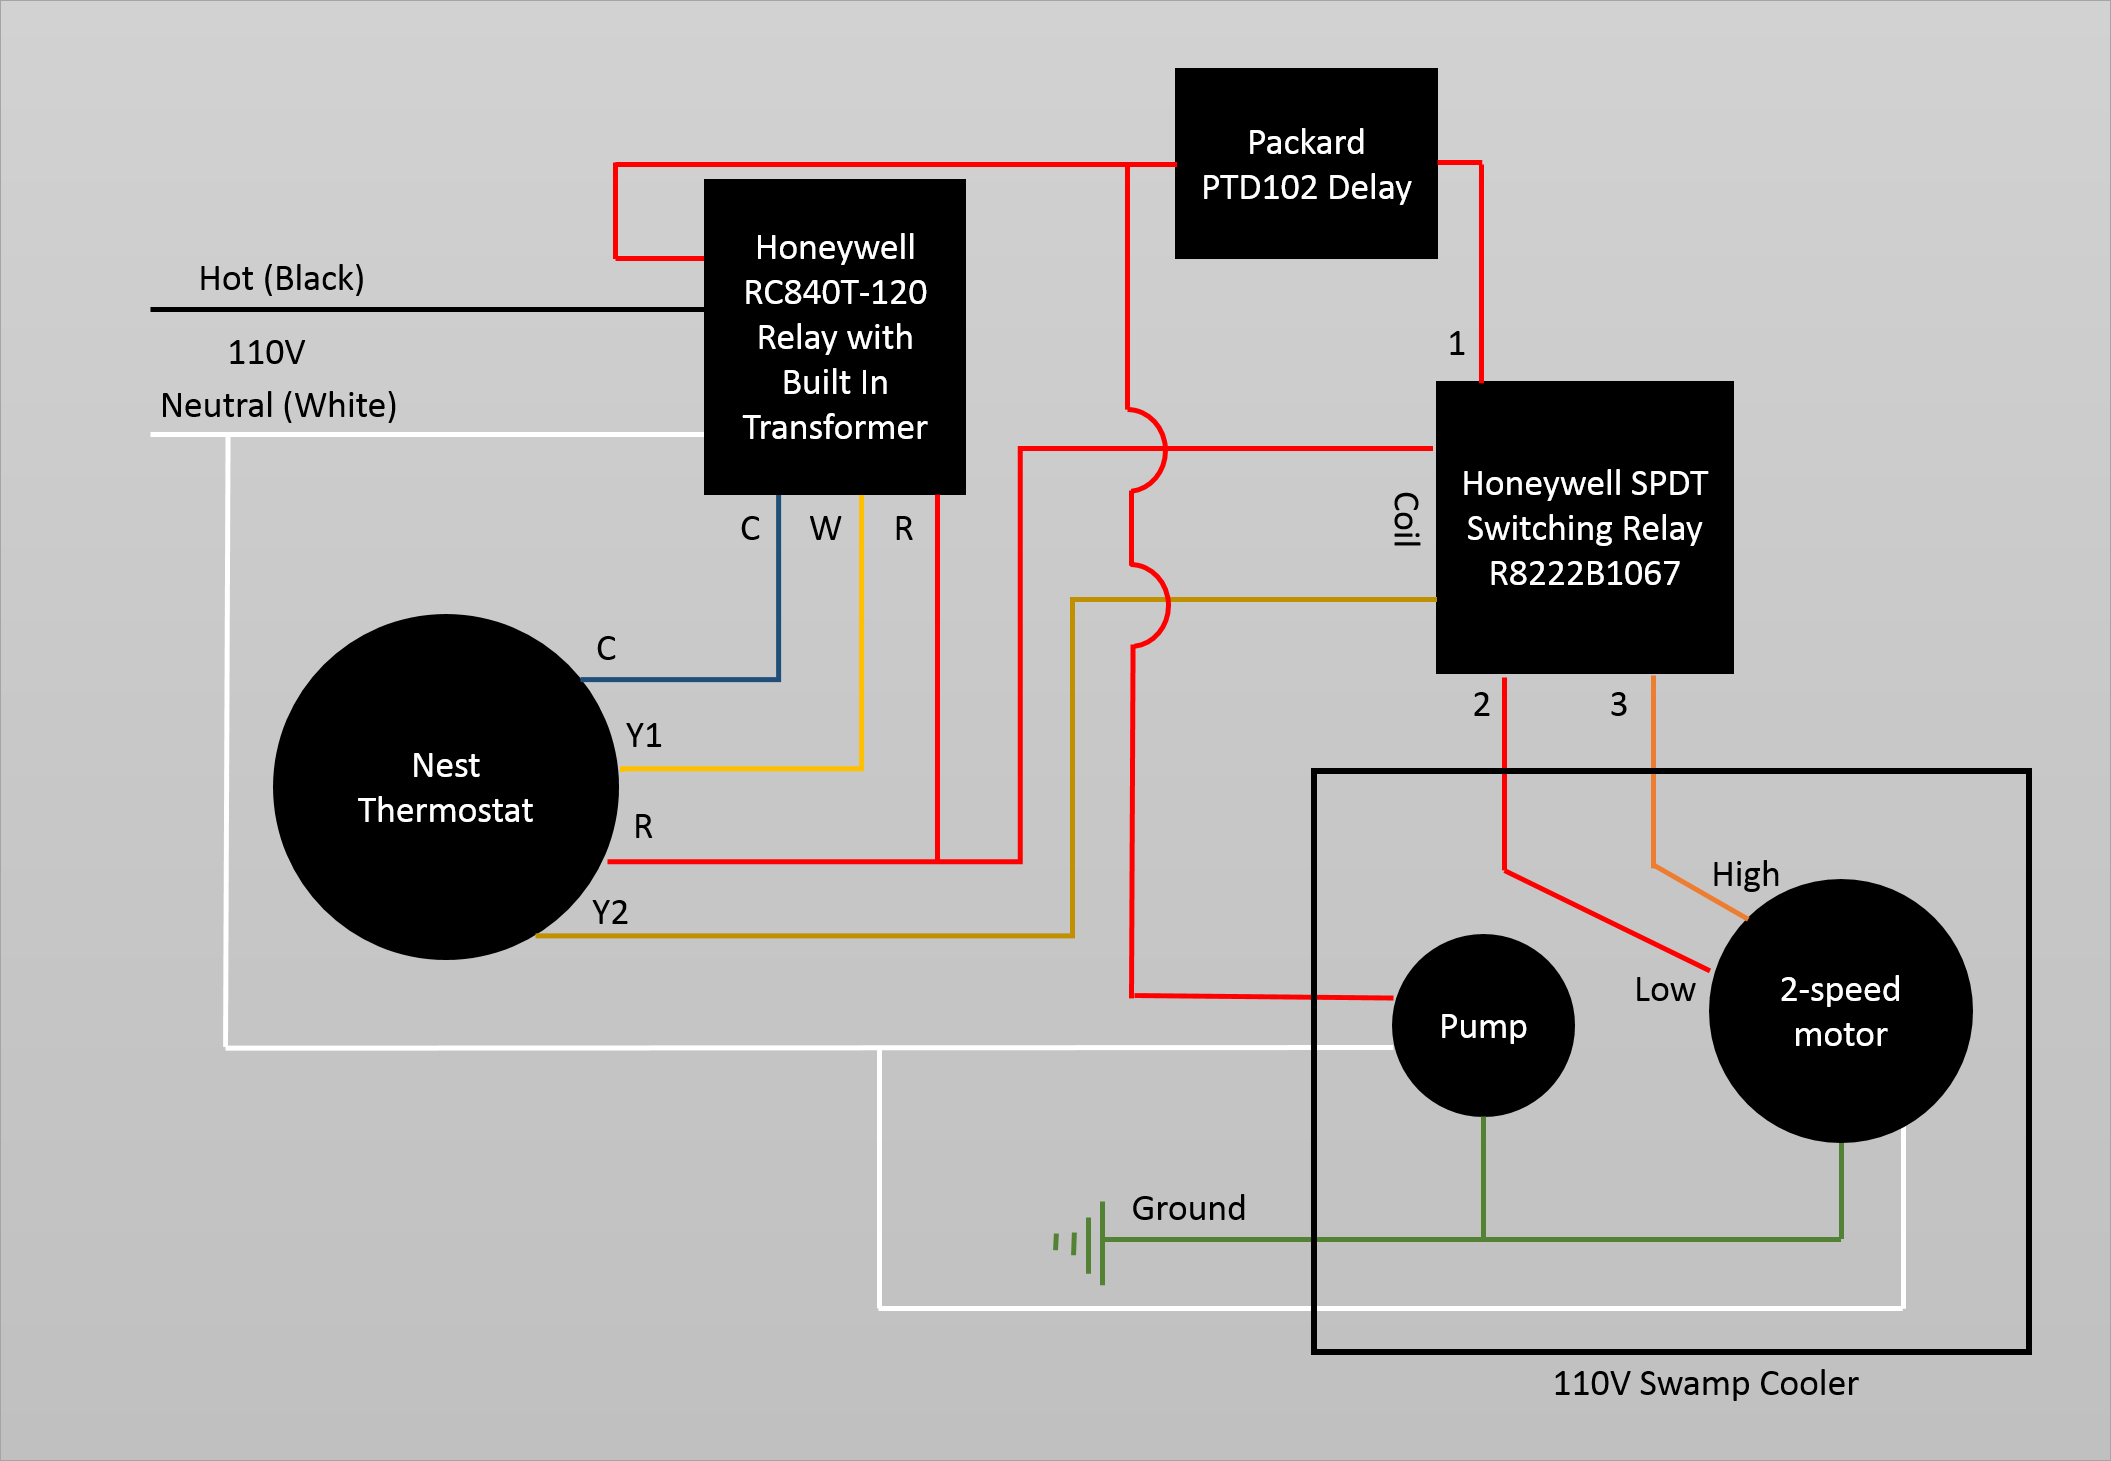 Wiring - Controlling 110V Swamp Cooler Using Nest Thermostat - Home - Nest E Wiring Diagram 5 Wire